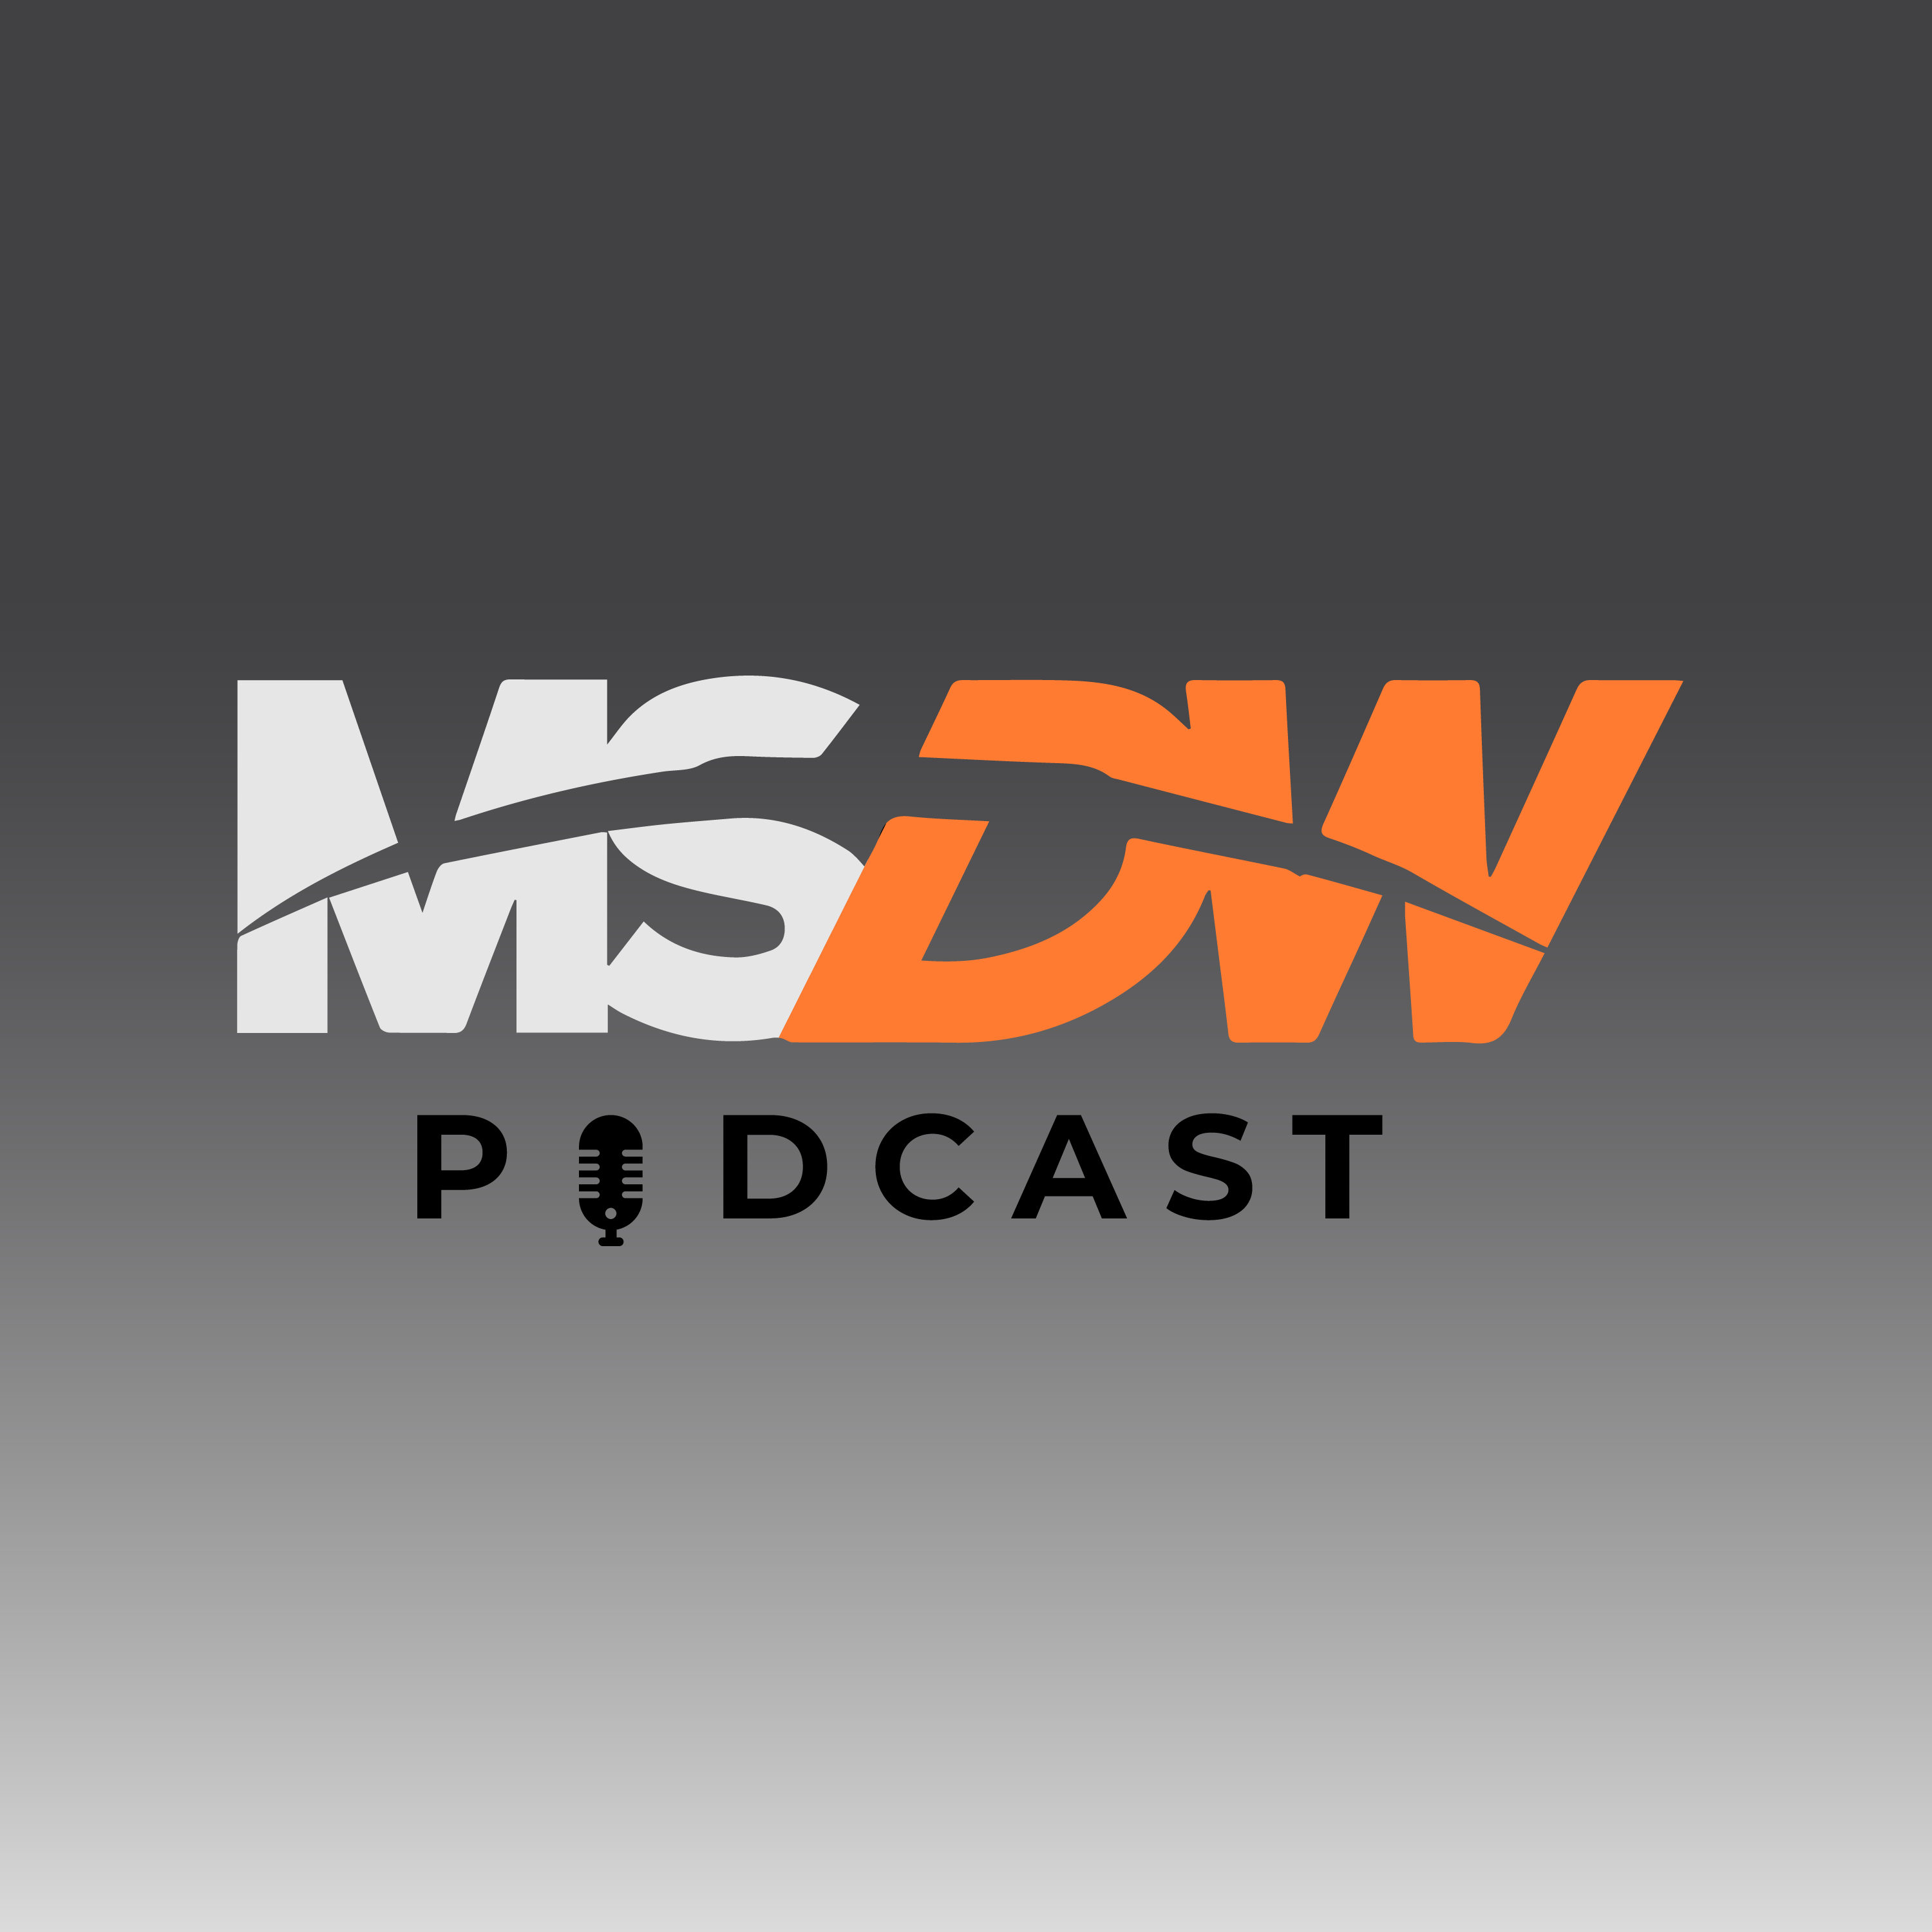 The MSDW Podcast show art